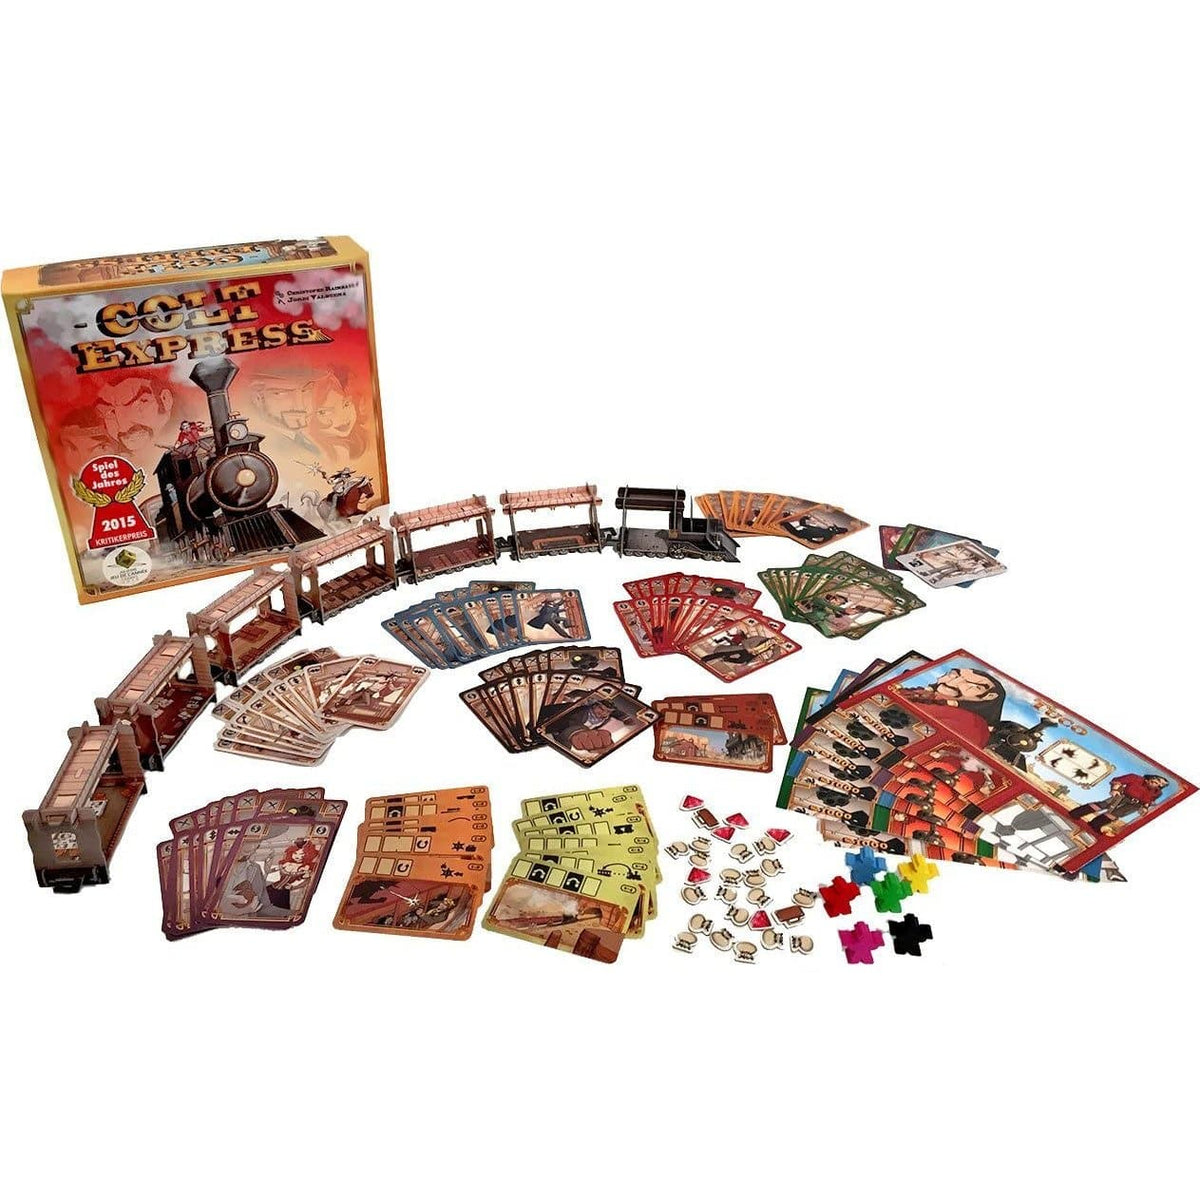 Colt Express Asmodee Board Games